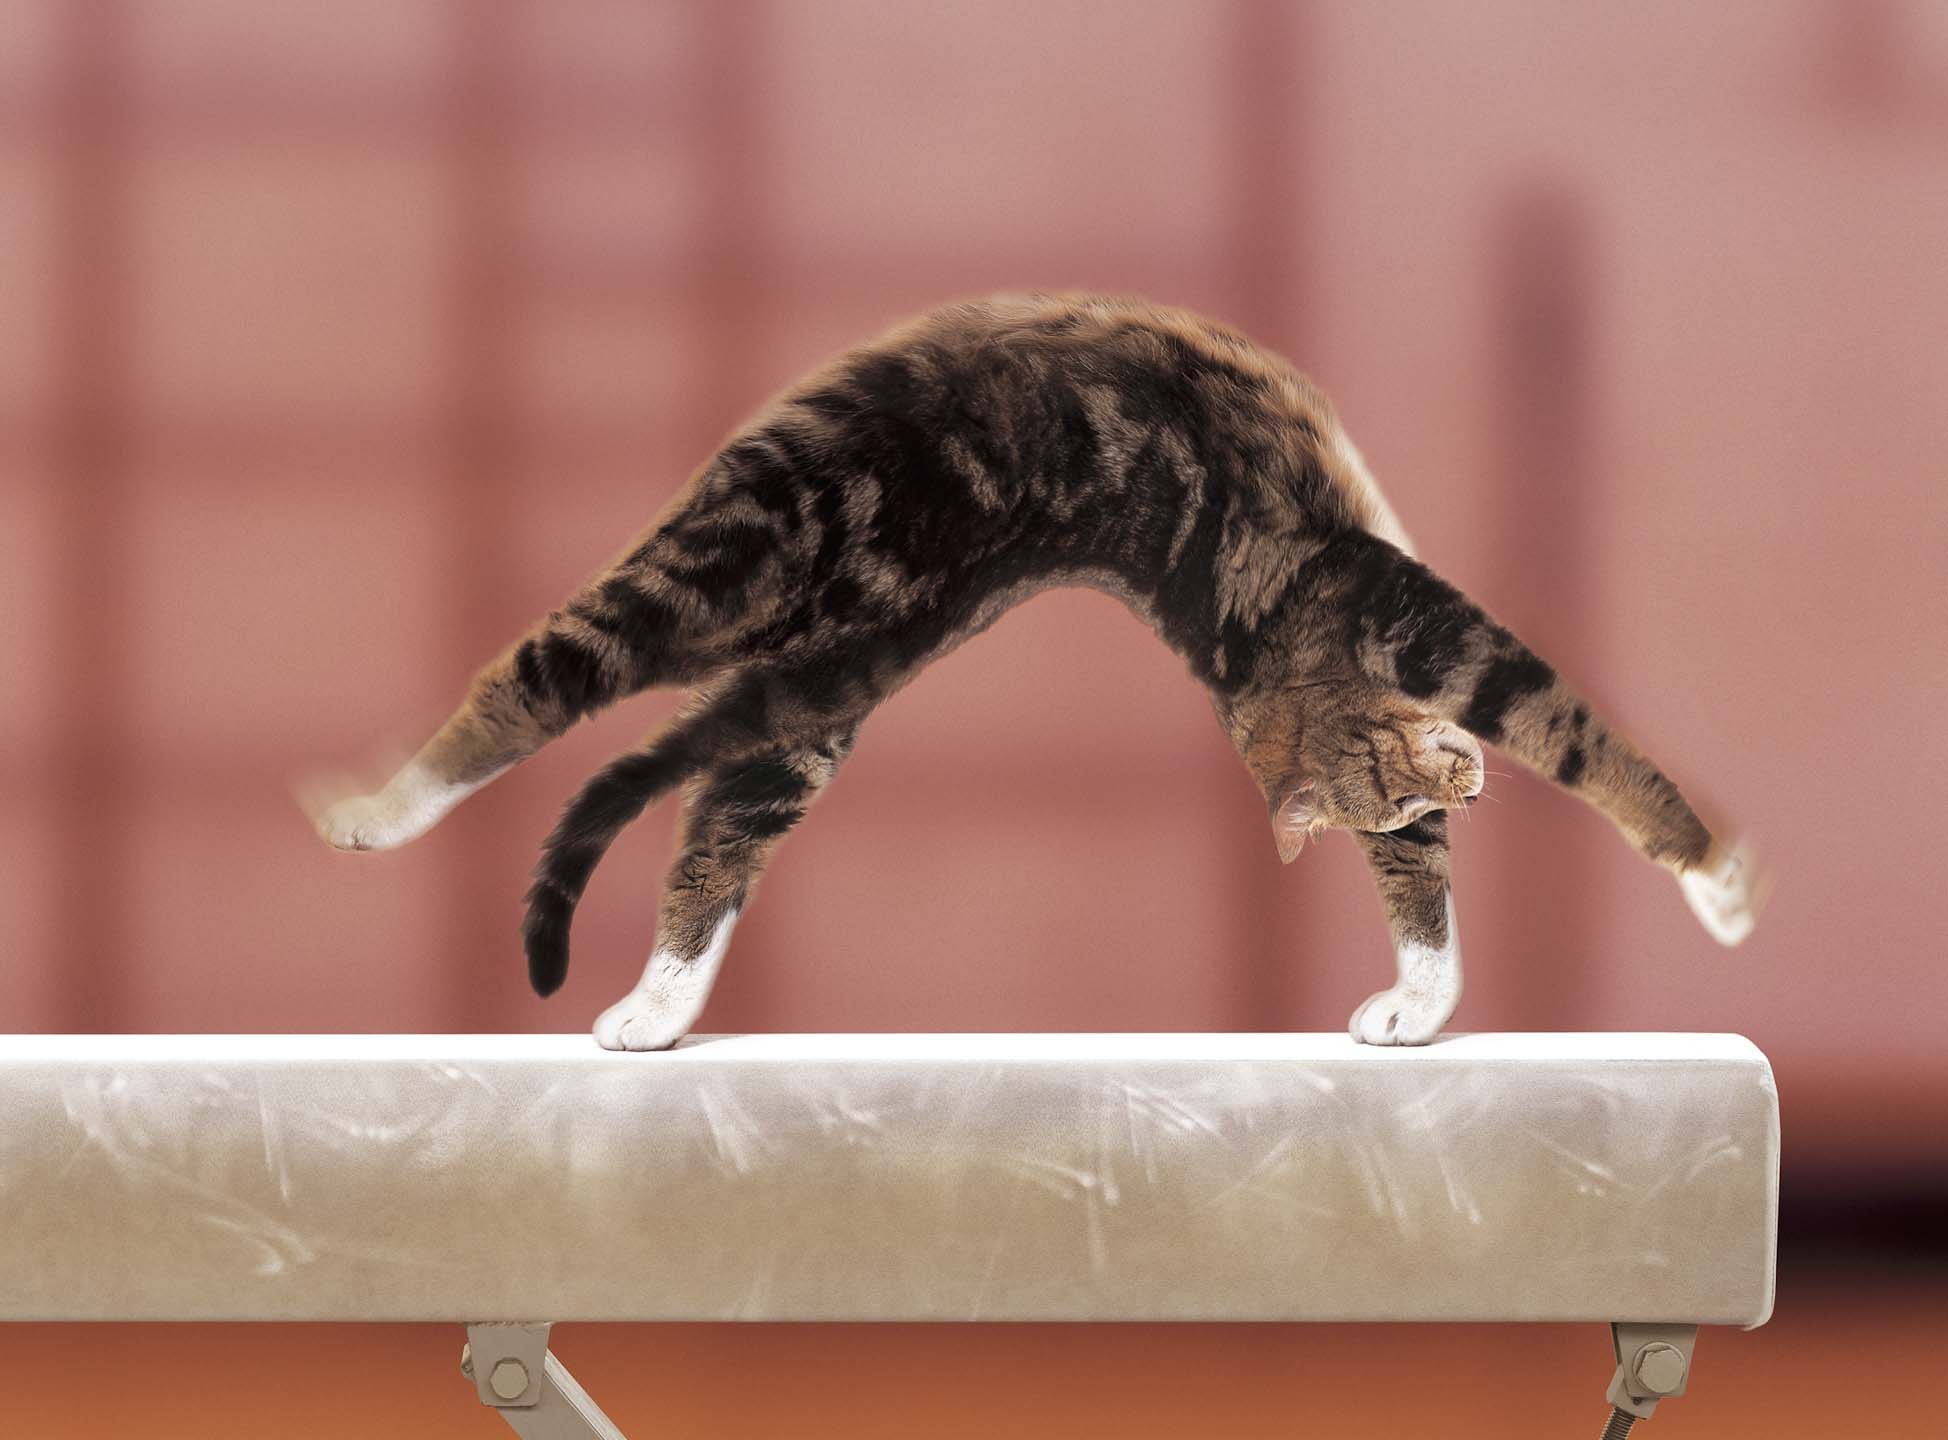 Alex Howe animal gymnast cat on bar somersault